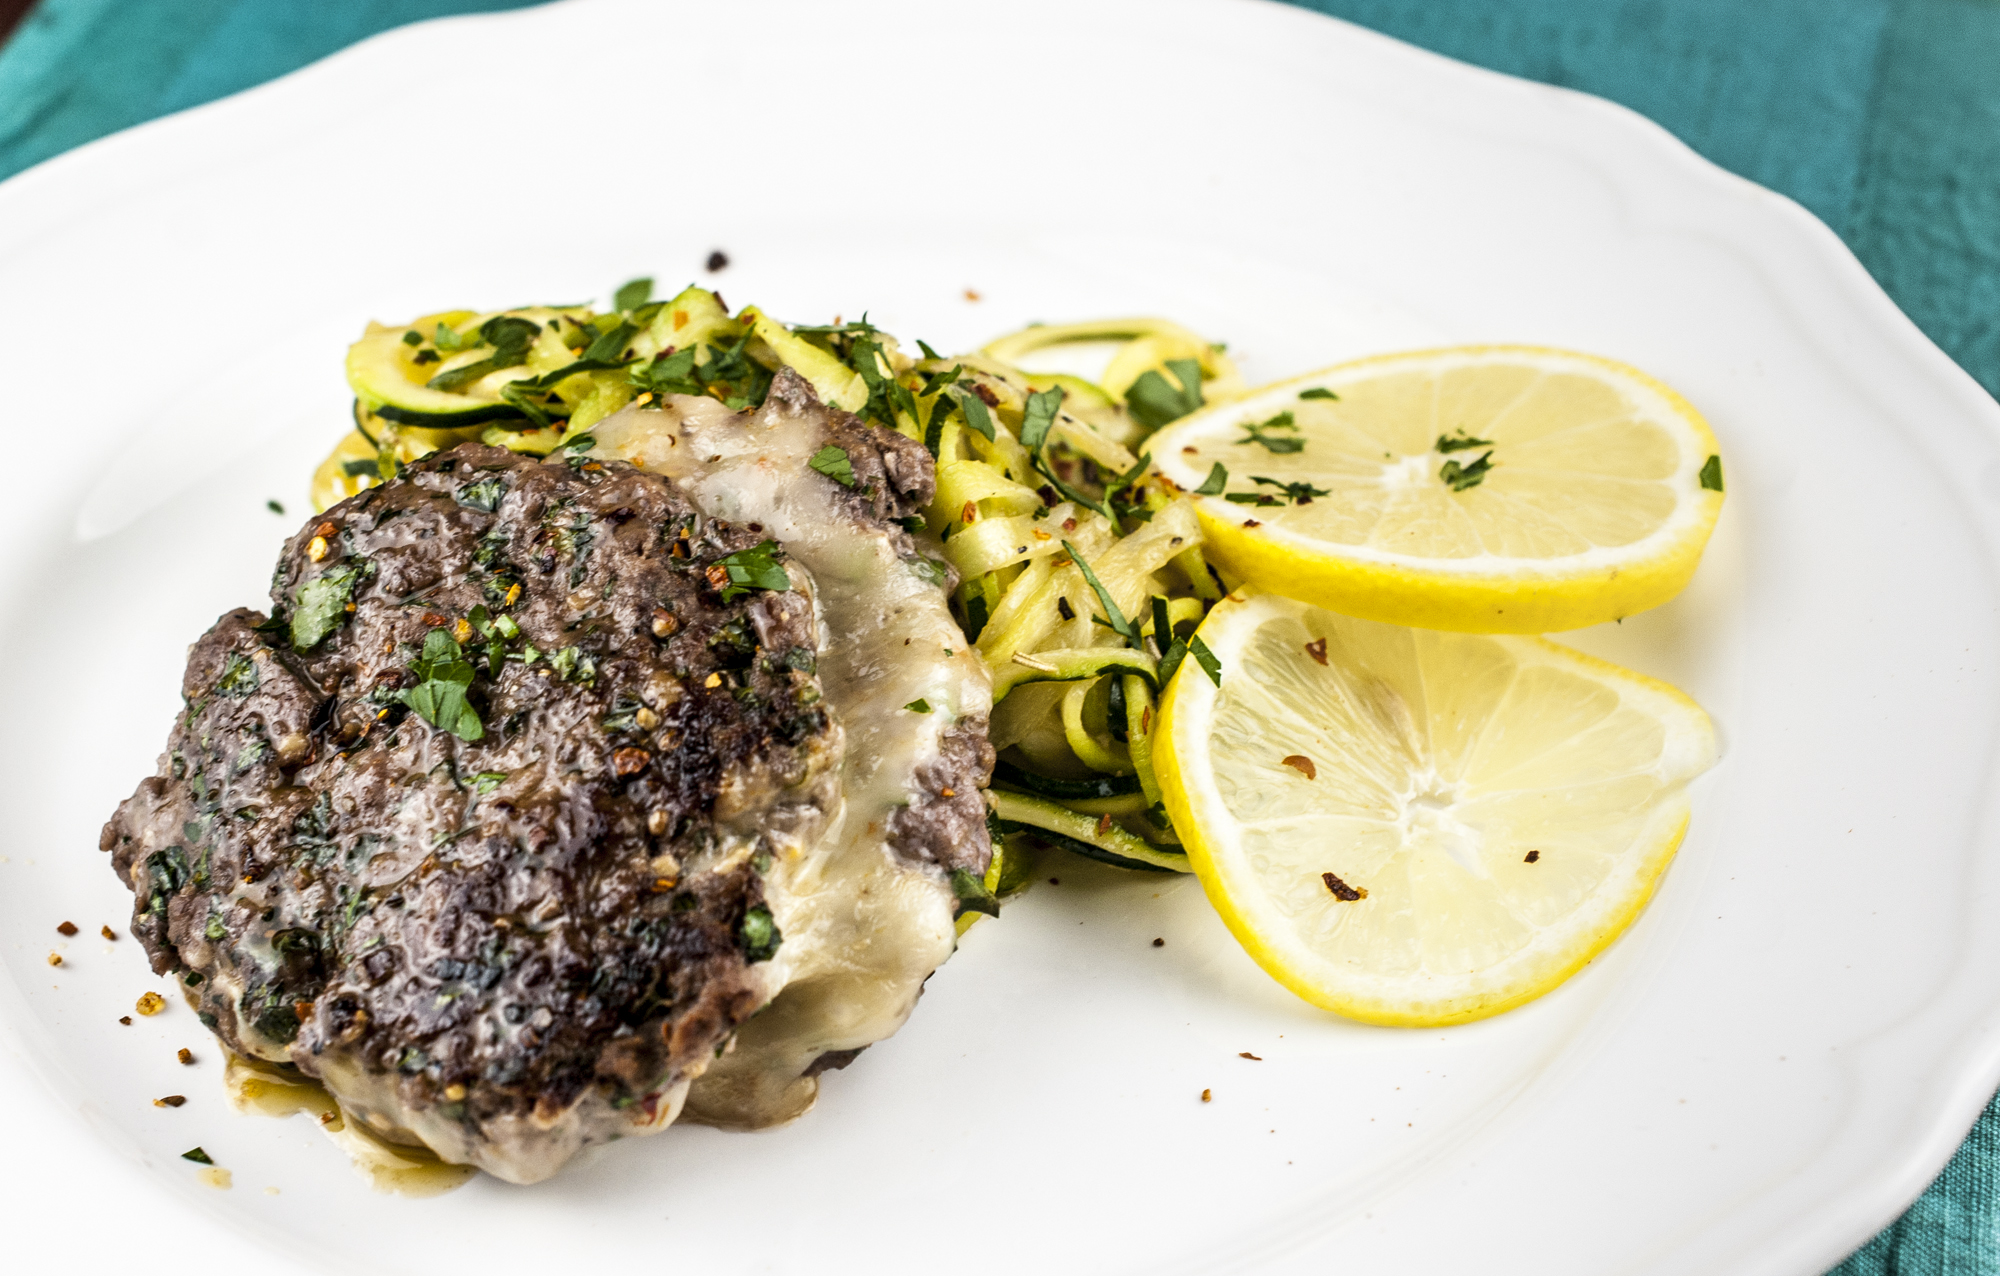 Havarti Stuff Burgers with Lemon and Garlic Zucchini Noodles